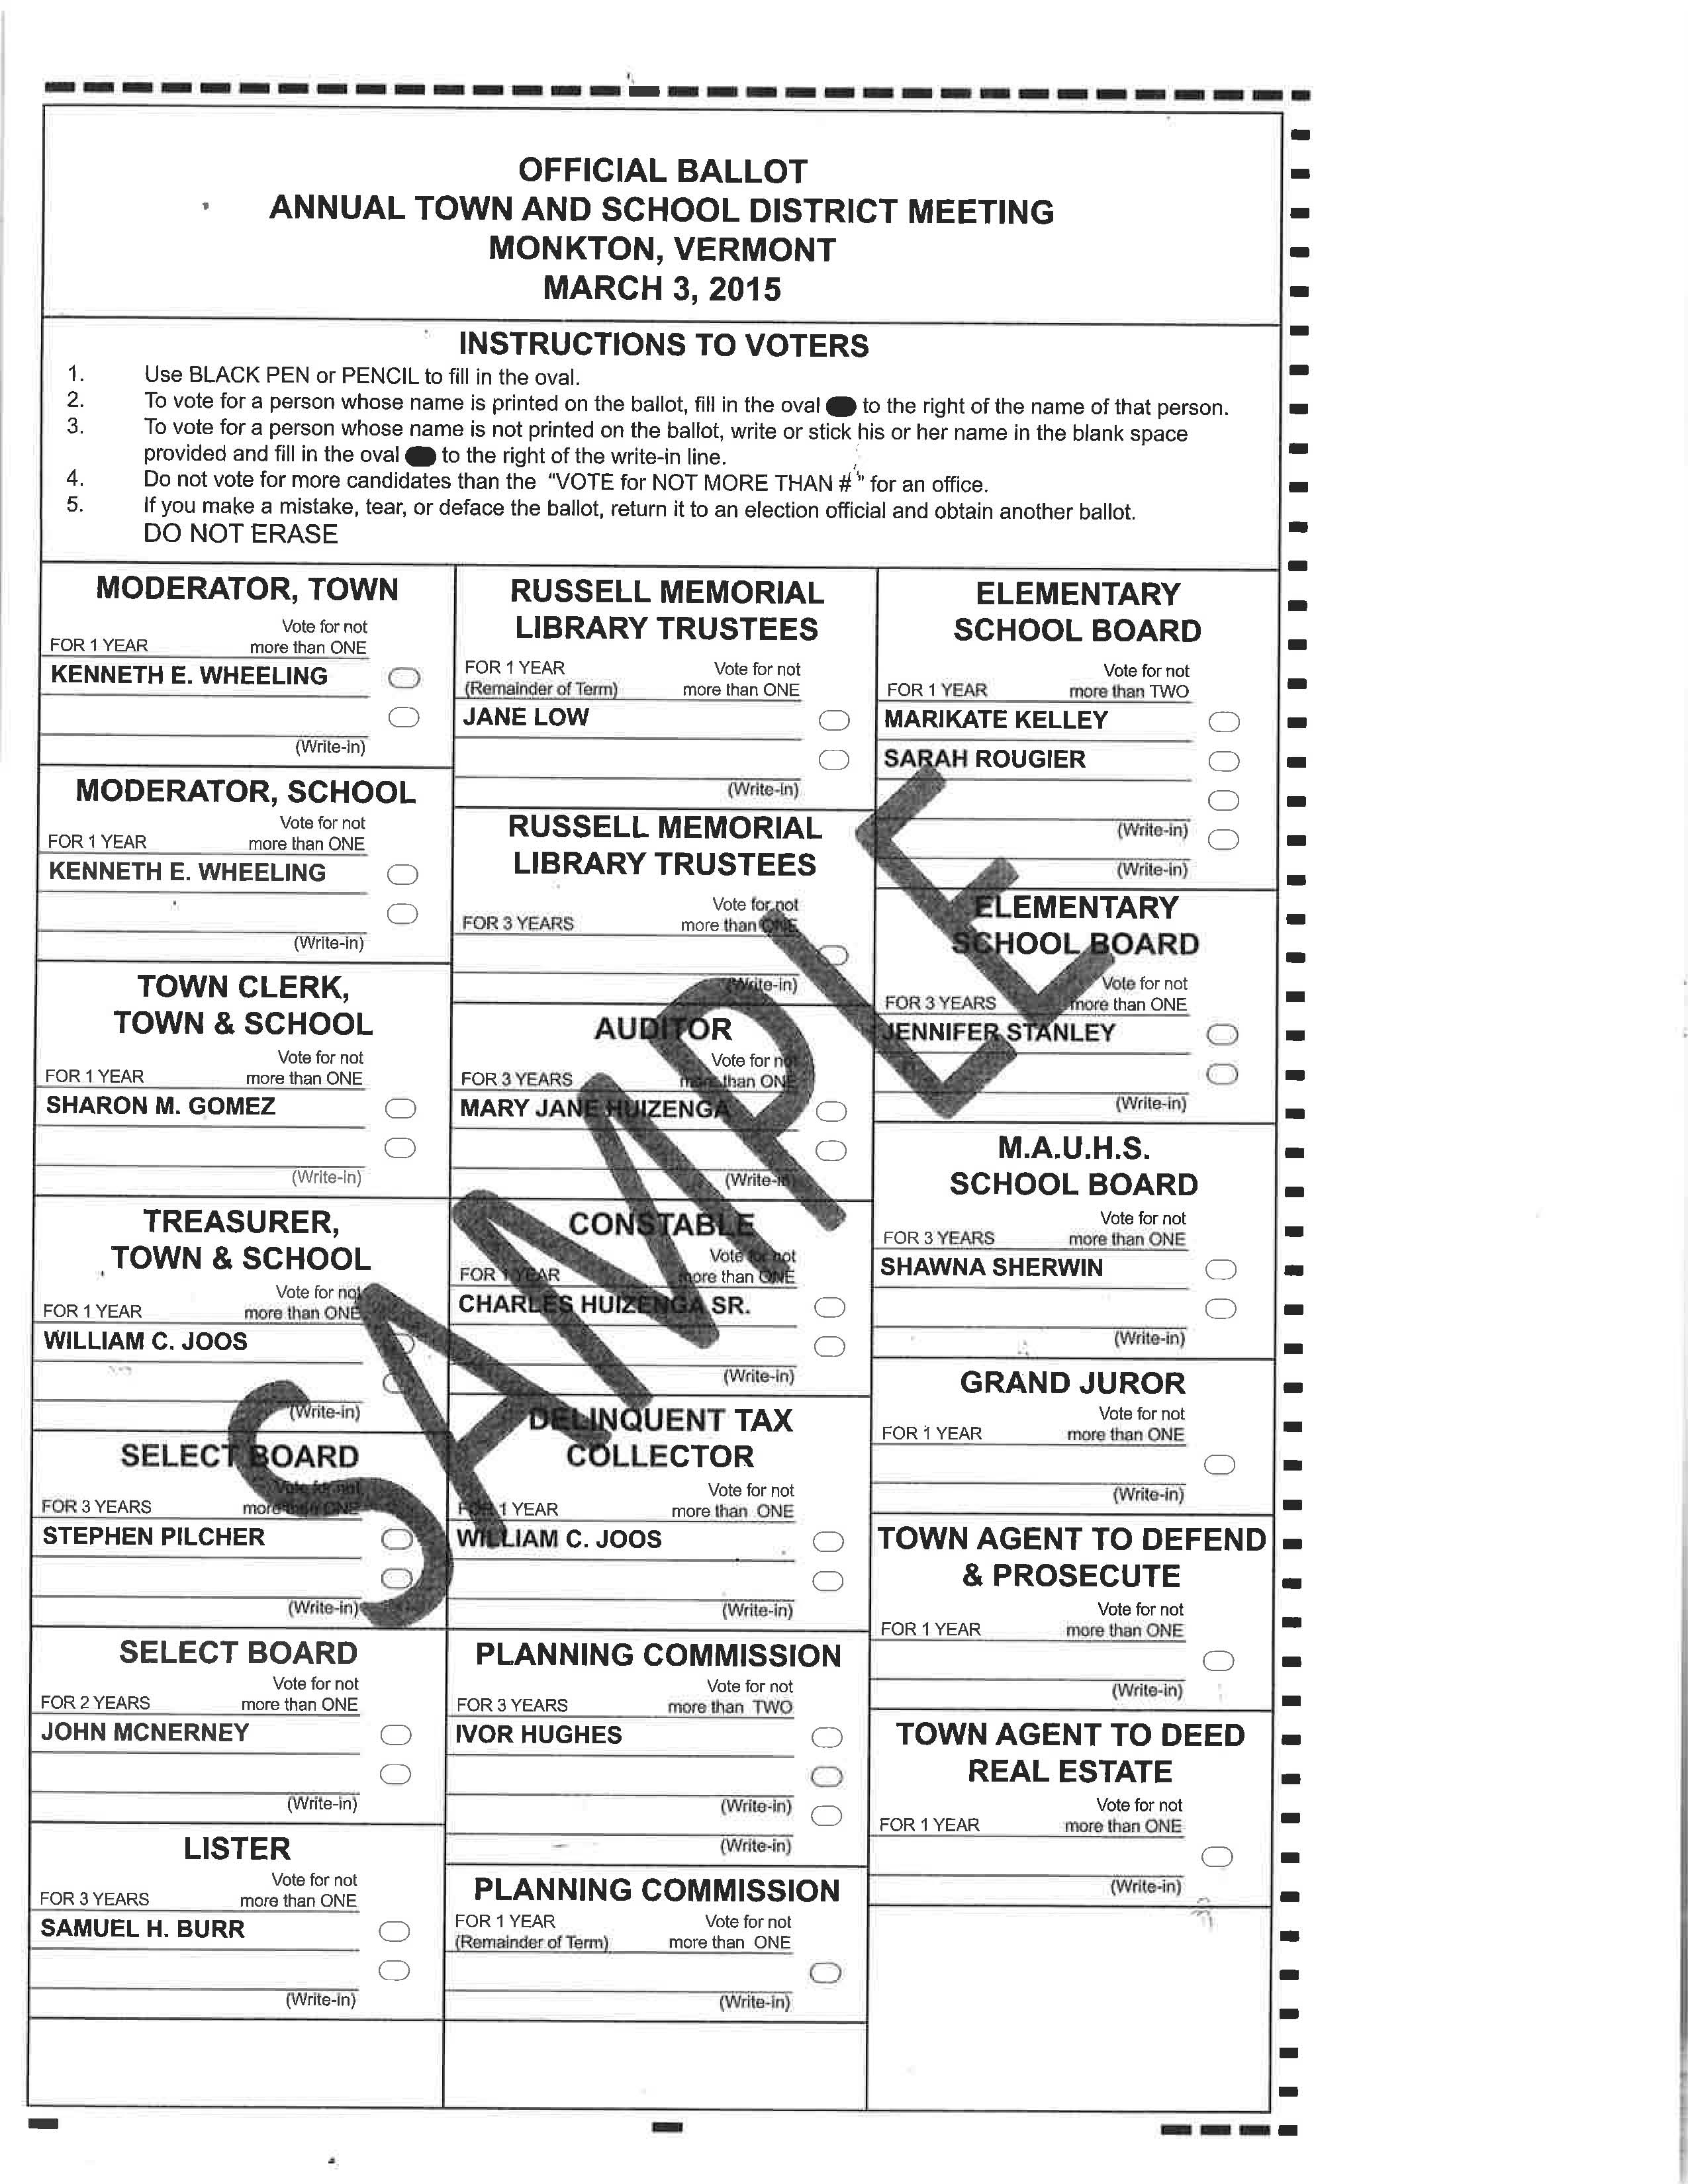 Sample Ballots for Town Meeting Day March 3, 2015 | Monkton Vermont